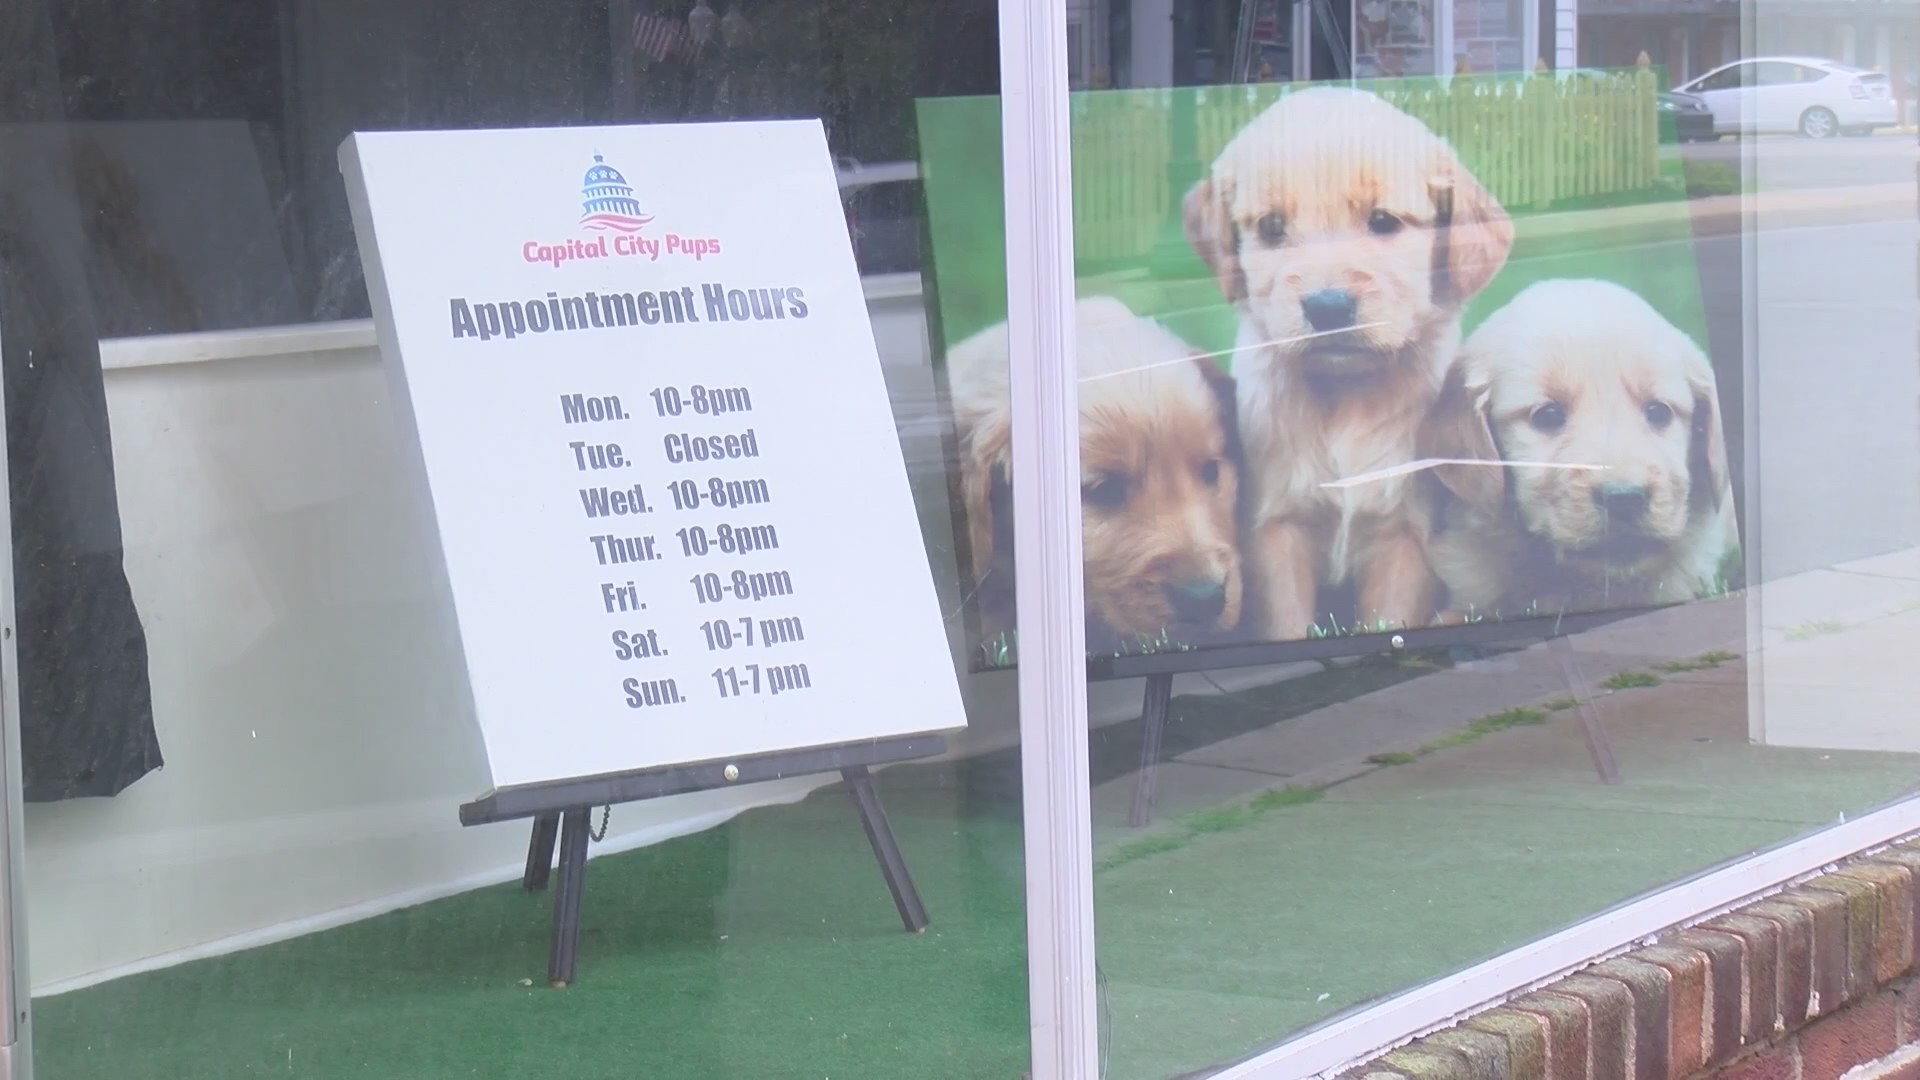 25 puppies seized from Capital City Pups for alleged